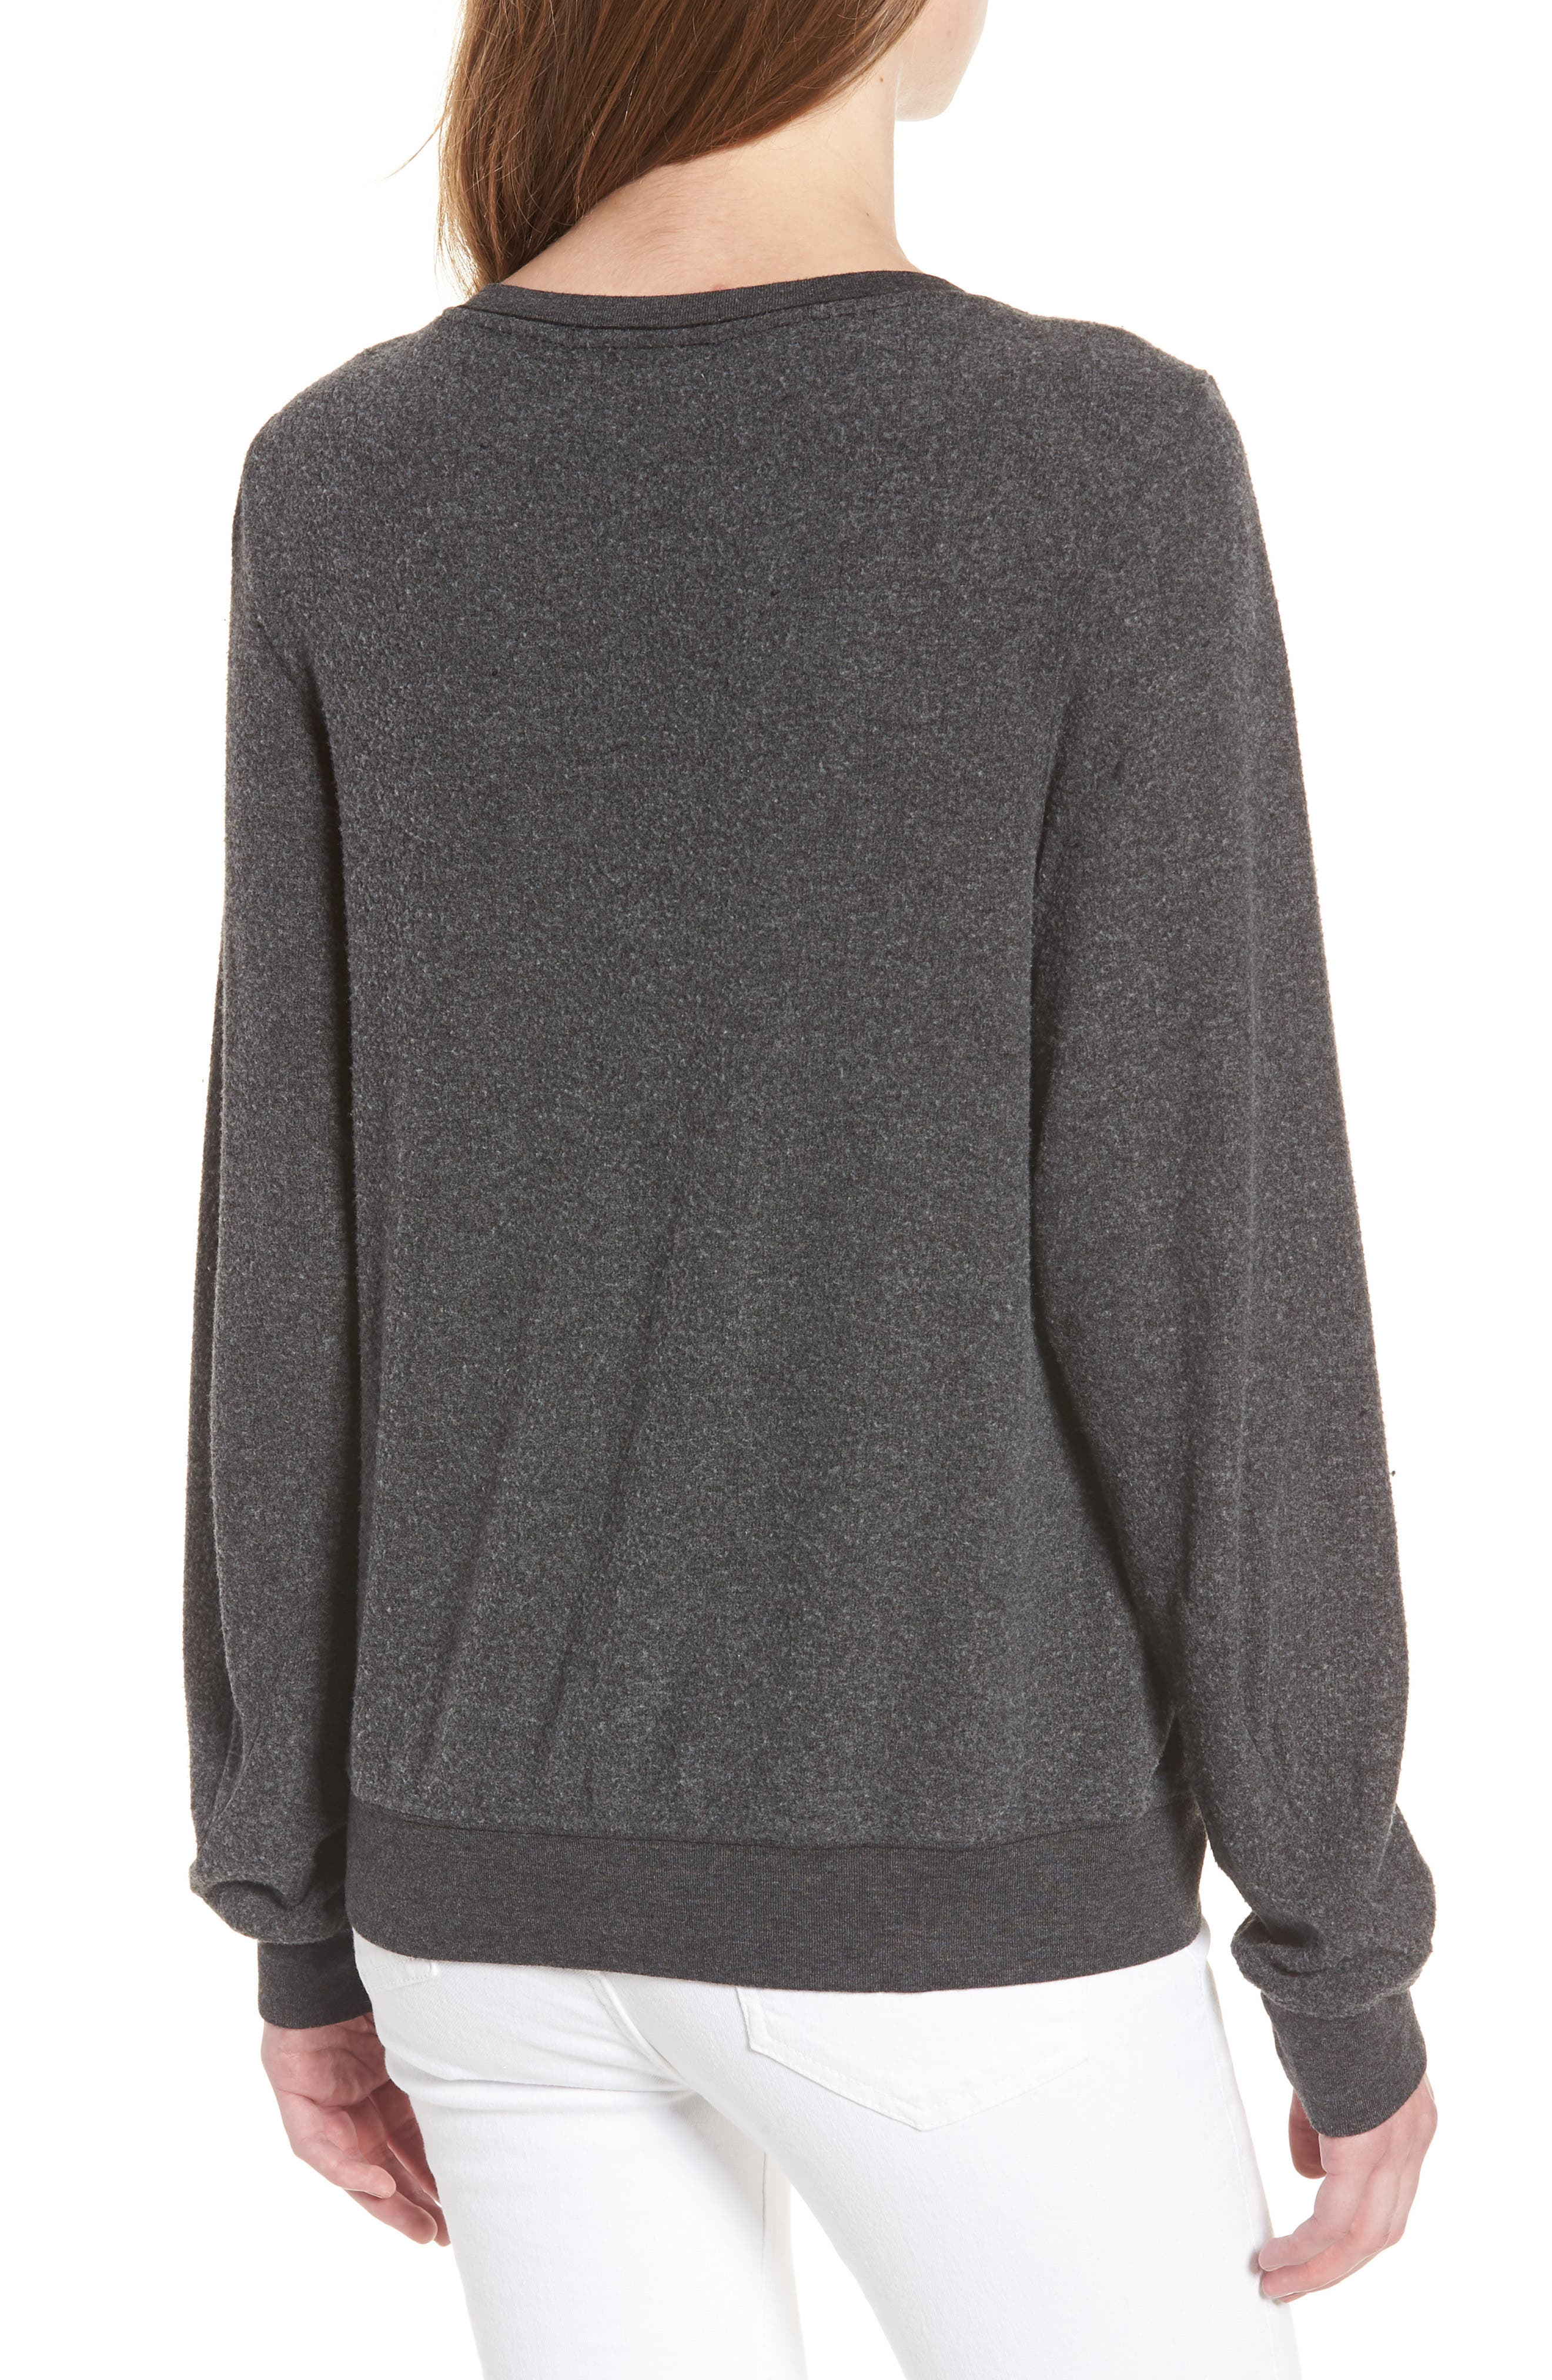 Never on Time Baggy Beach Jumper Pullover,                             Alternate thumbnail 2, color,                             Black